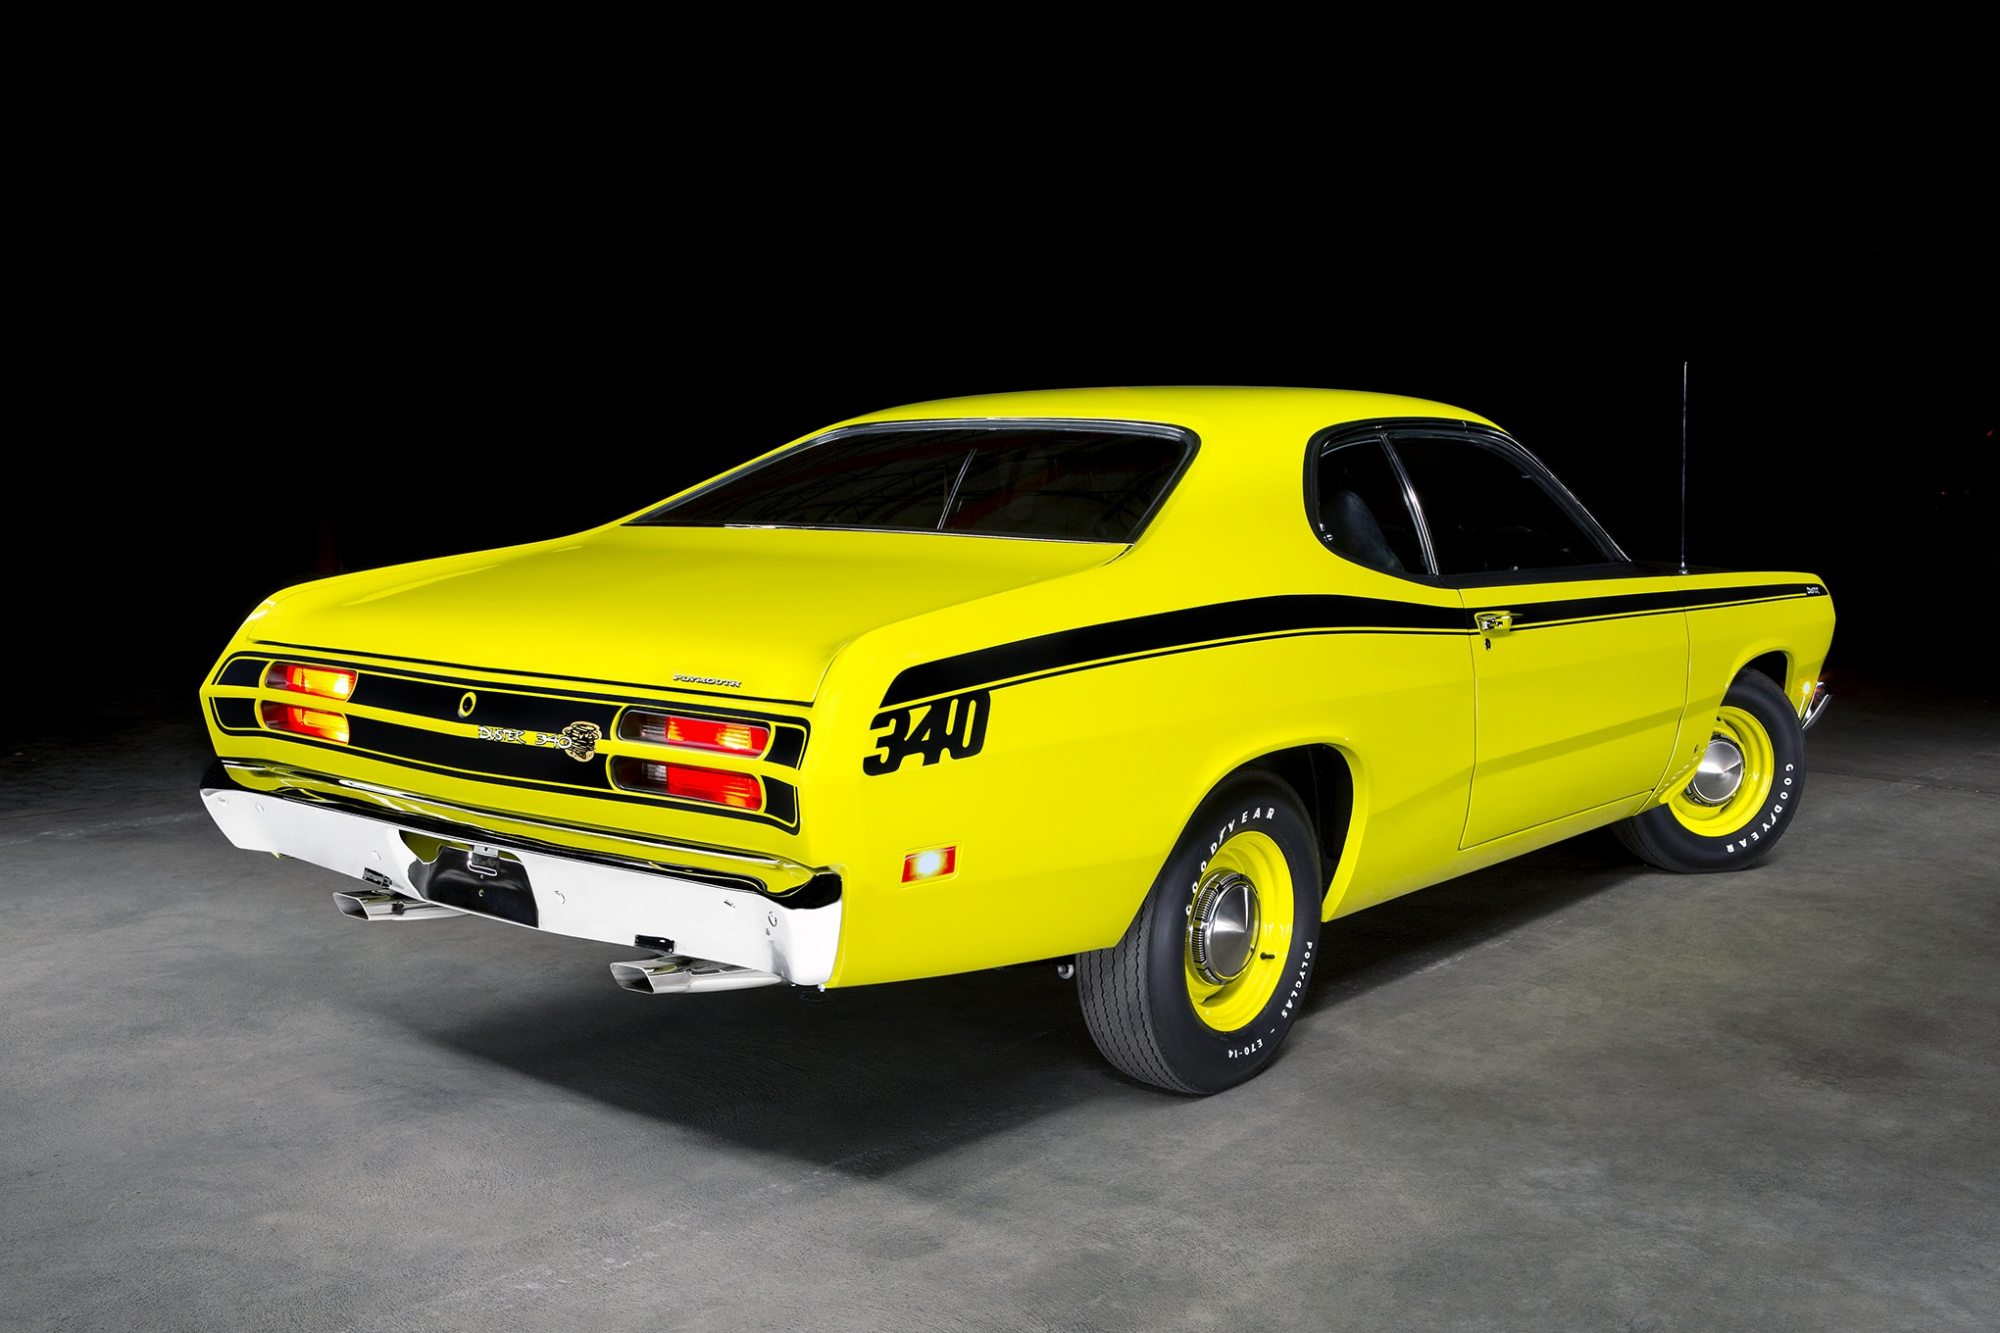 hight resolution of steve cabral s 1971 plymouth duster 340 has been restored to be the finest example of an a body